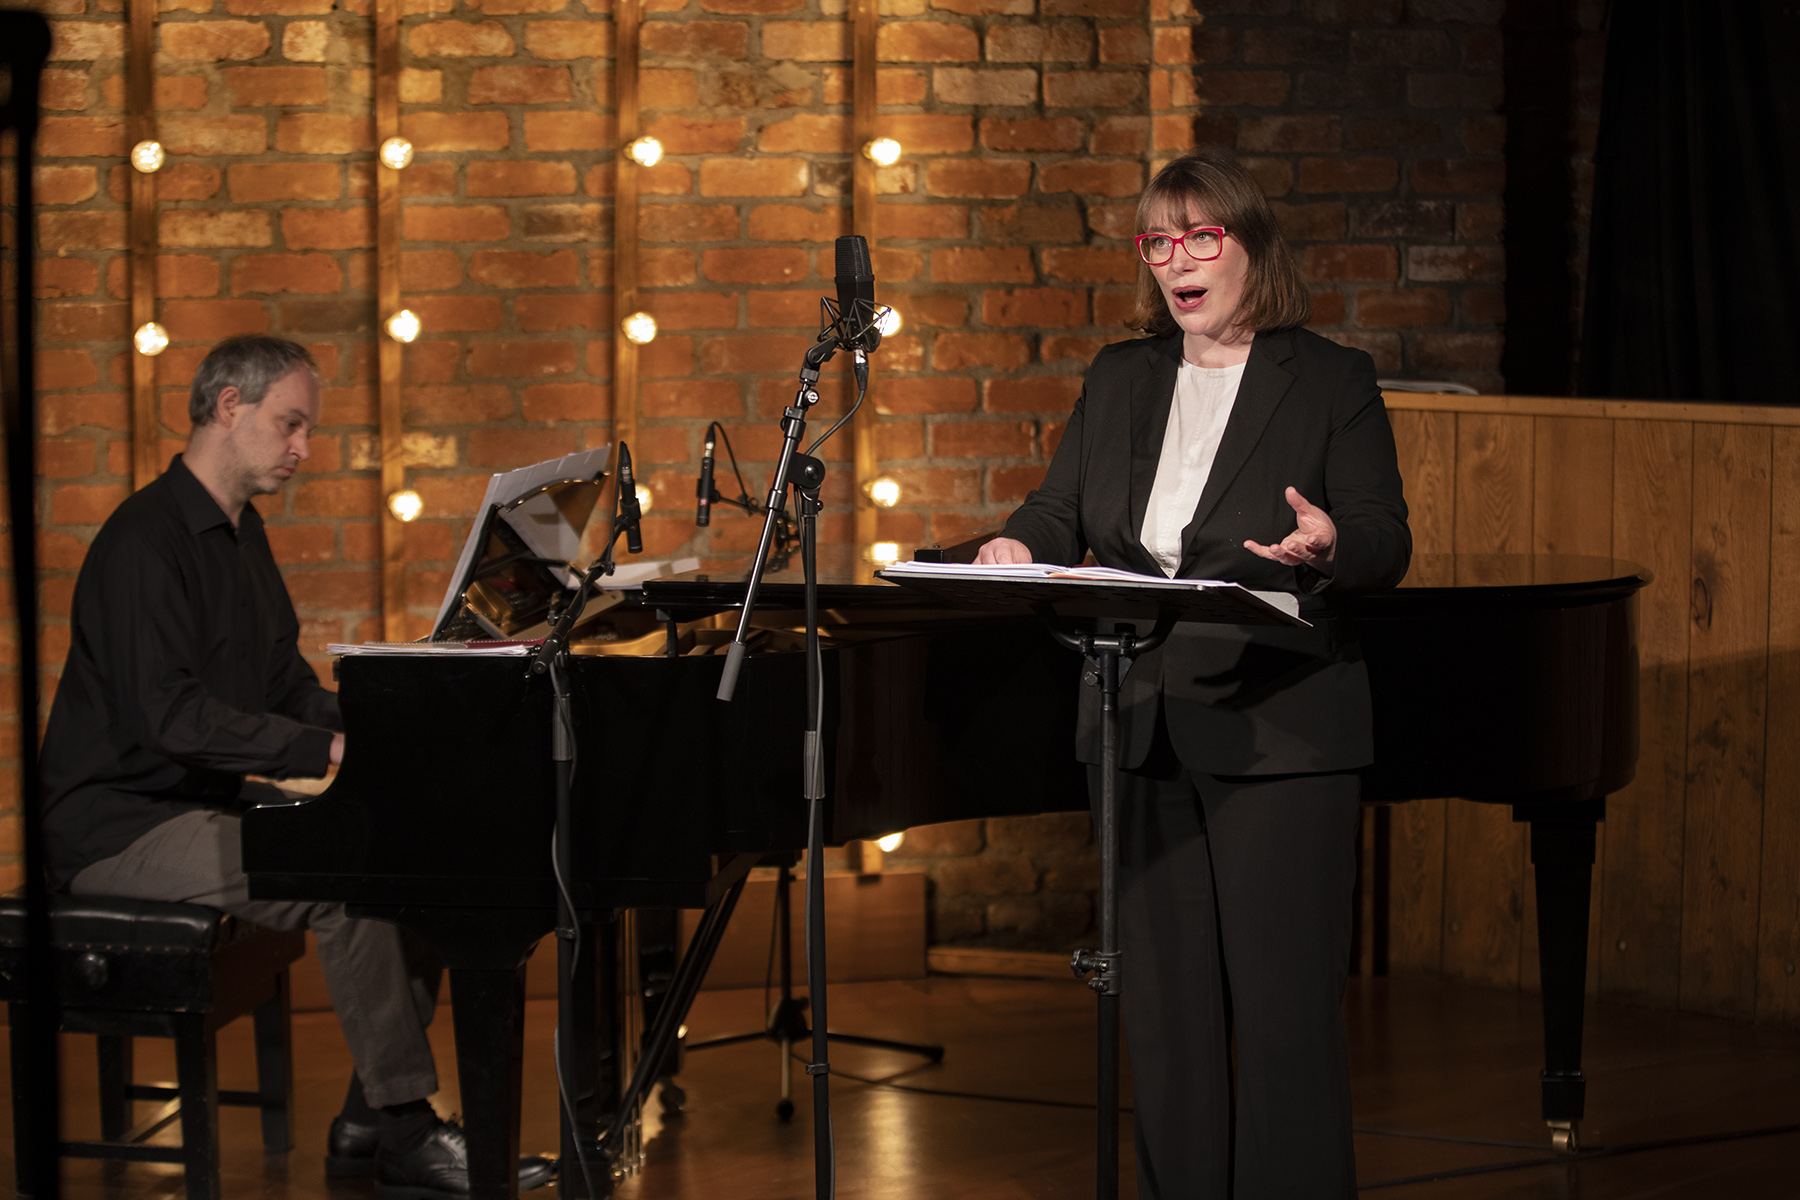 Sundays@Noon Online: Elizabeth Hilliard, soprano and David Bremner, piano